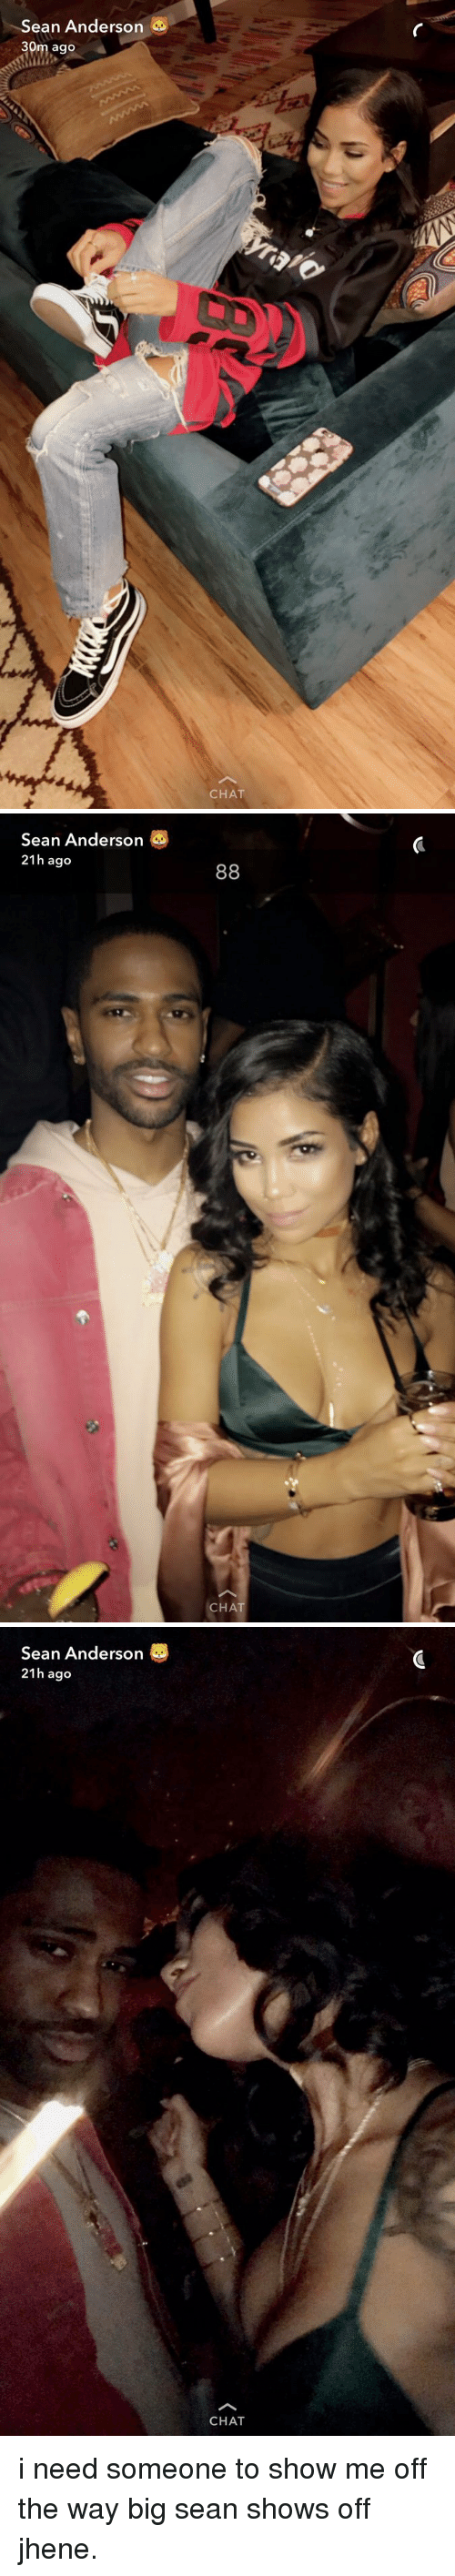 Big Sean, Chat, and Girl Memes: Sean Anderson  30m ago  CHAT   Sean Anderson  21h ago  88  CHAT   Sean Anderson  21h ago  CHAT i need someone to show me off the way big sean shows off jhene.